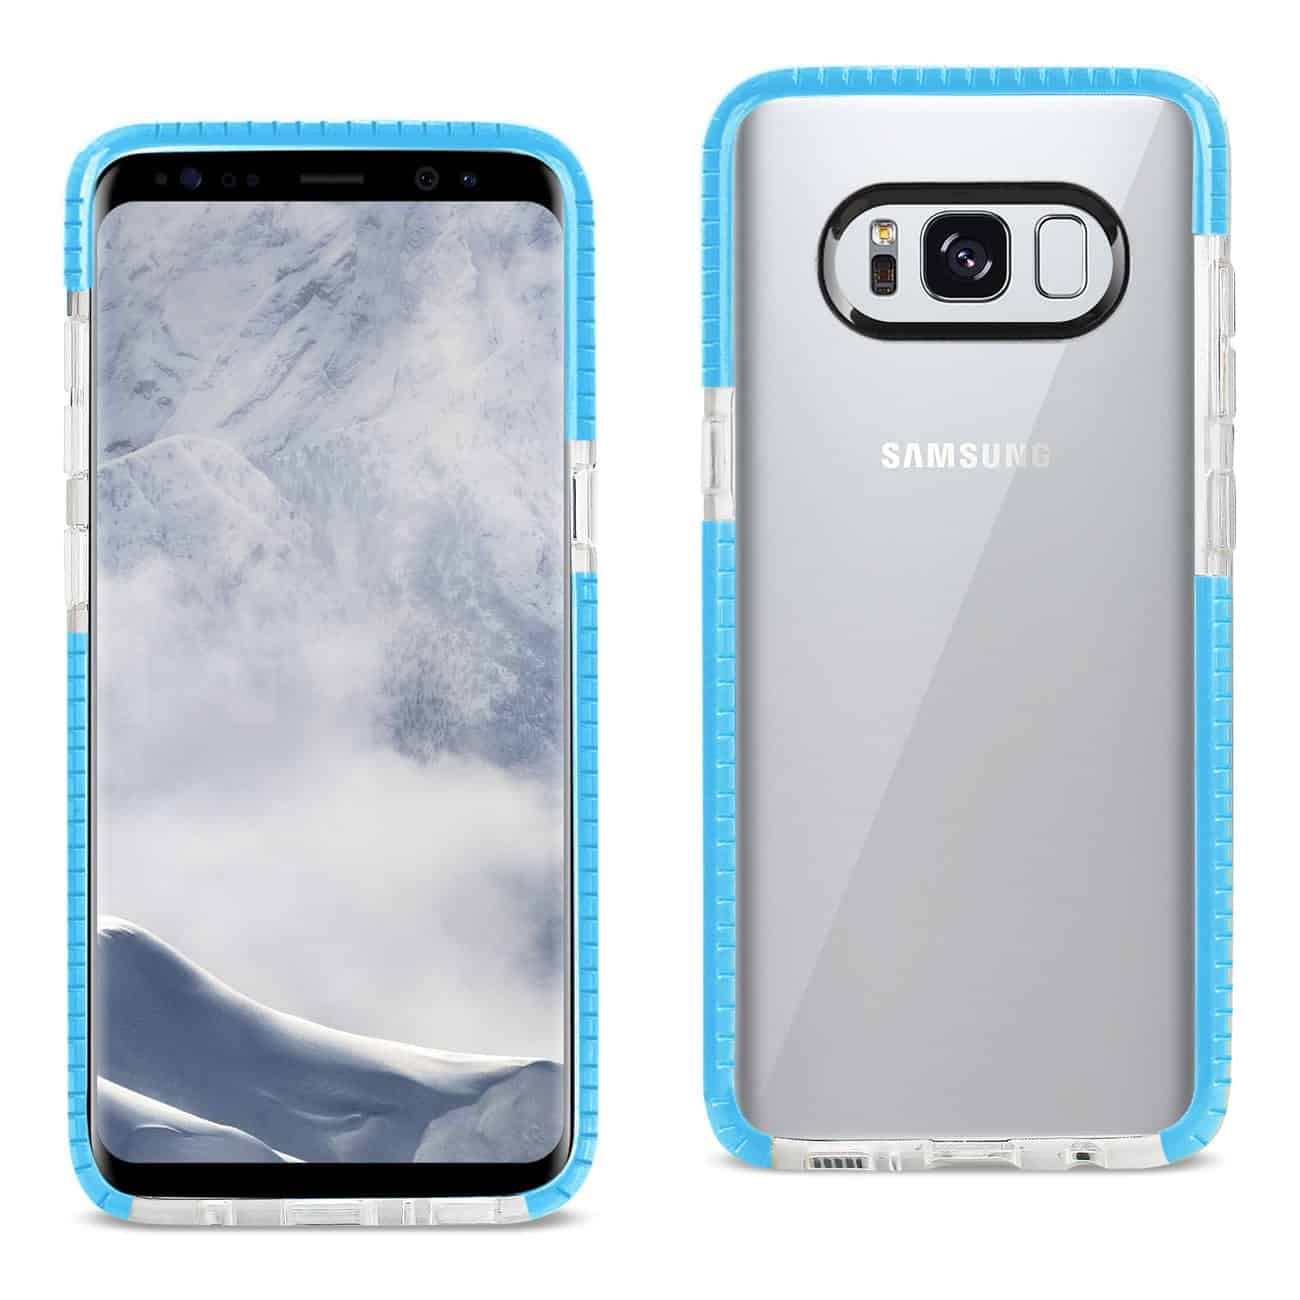 SAMSUNG GALAXY S8 EDGE/ S8 PLUS SOFT TRANSPARENT TPU CASE IN CLEAR BLUE